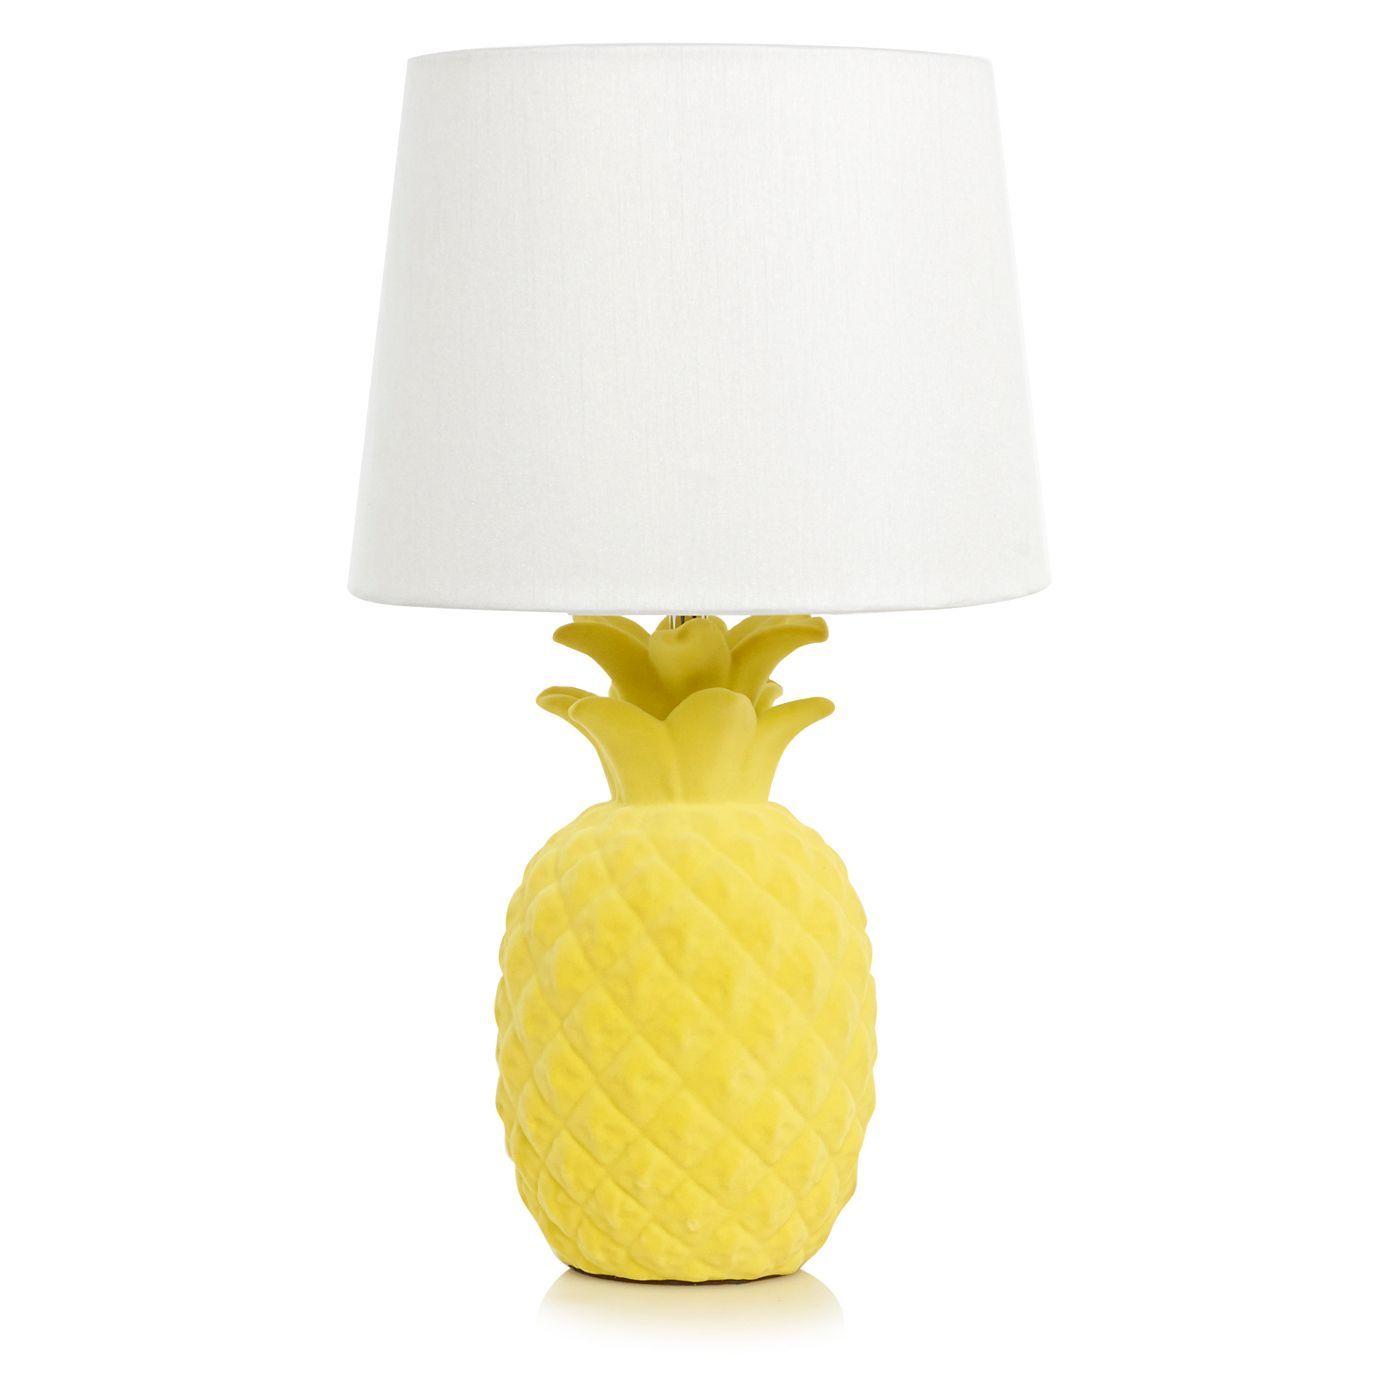 George Home Princes Trust Pineapple Table Lamp